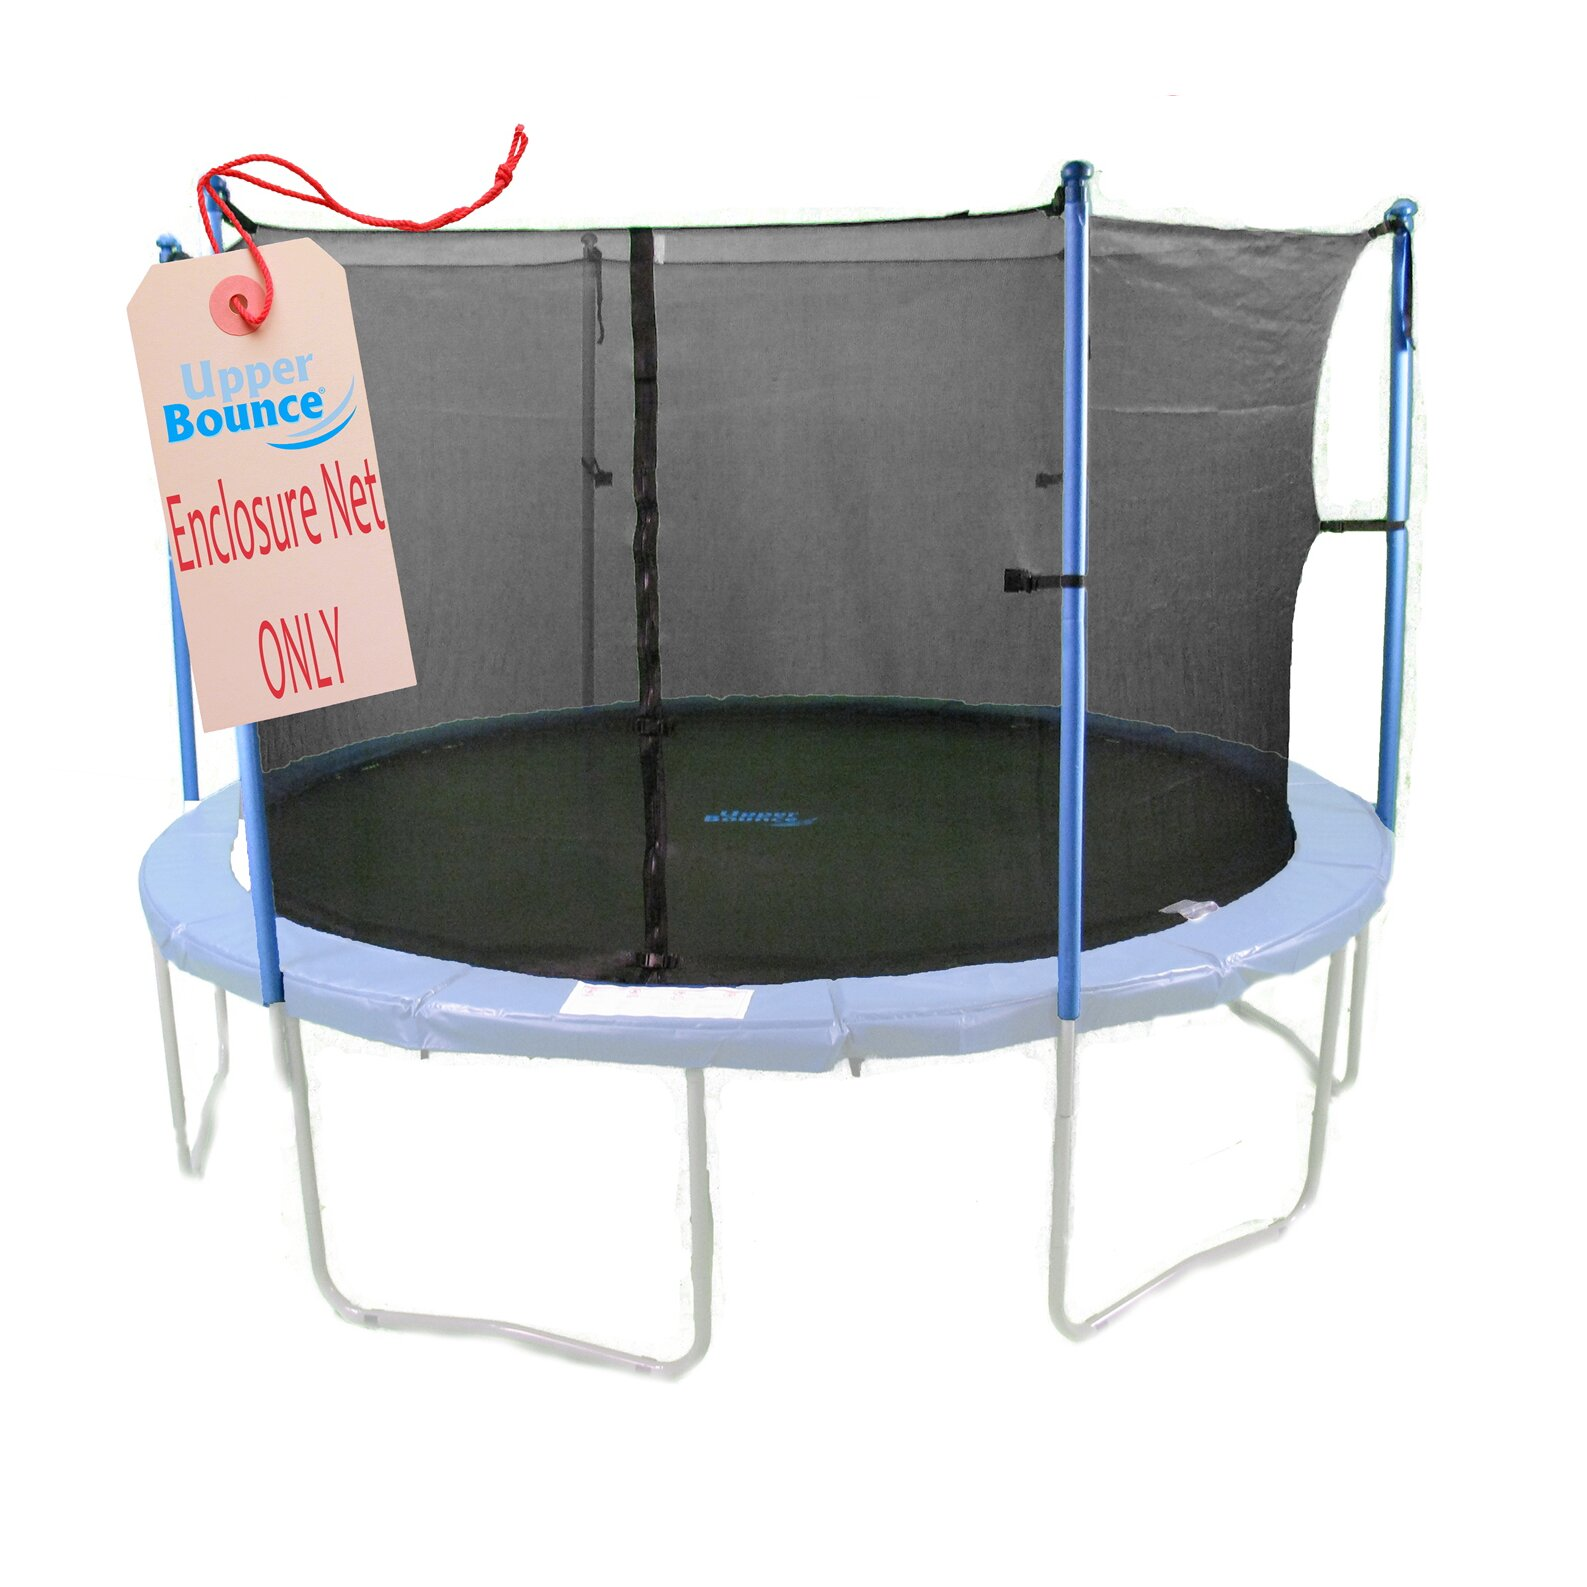 Upper Bounce 14 Ft Trampoline Enclosure Net: Upper Bounce 14' Round Trampoline Net Using 4 Poles Or 2